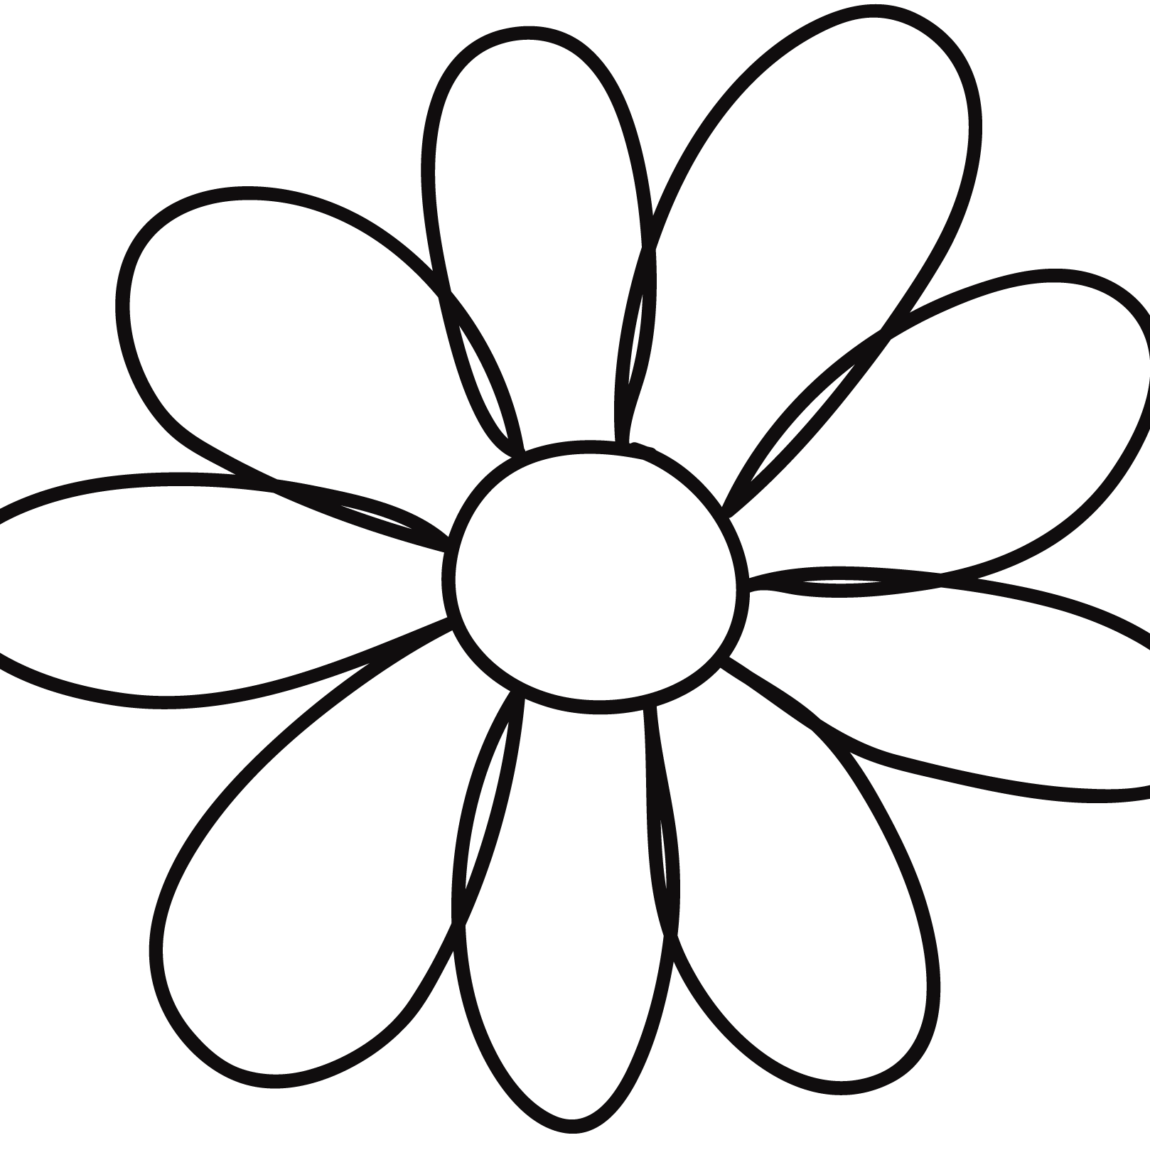 petal flower template. Quilting clipart black and white